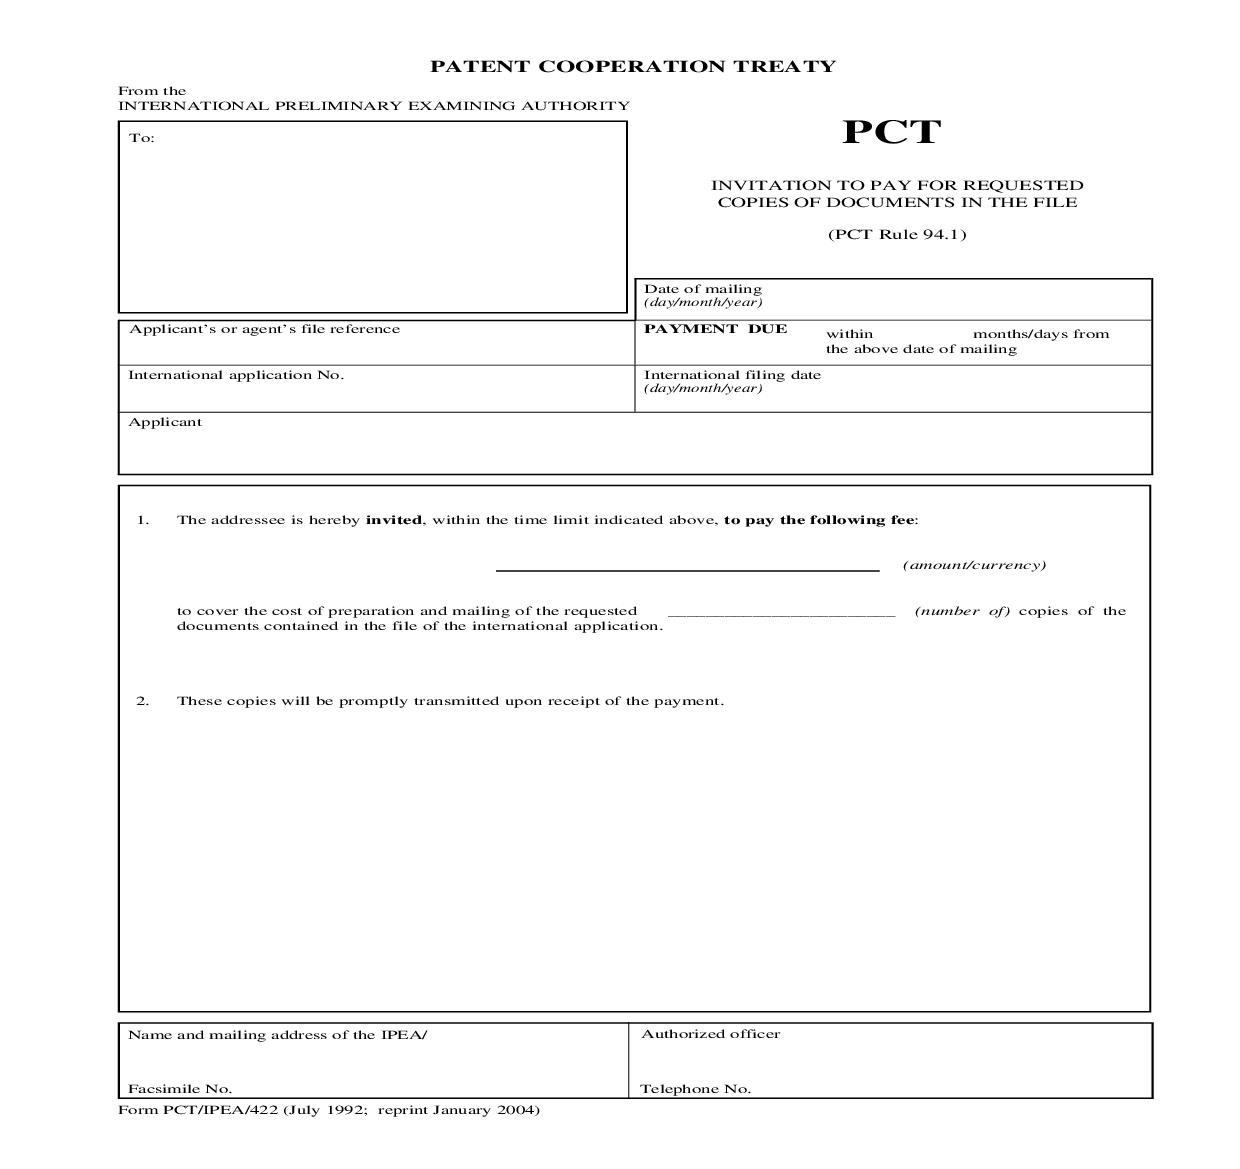 Invitation To Pay For Requested Copies Of Documents In The File {PCT-IPEA-422} | Pdf Fpdf Doc Docx | Official Federal Forms